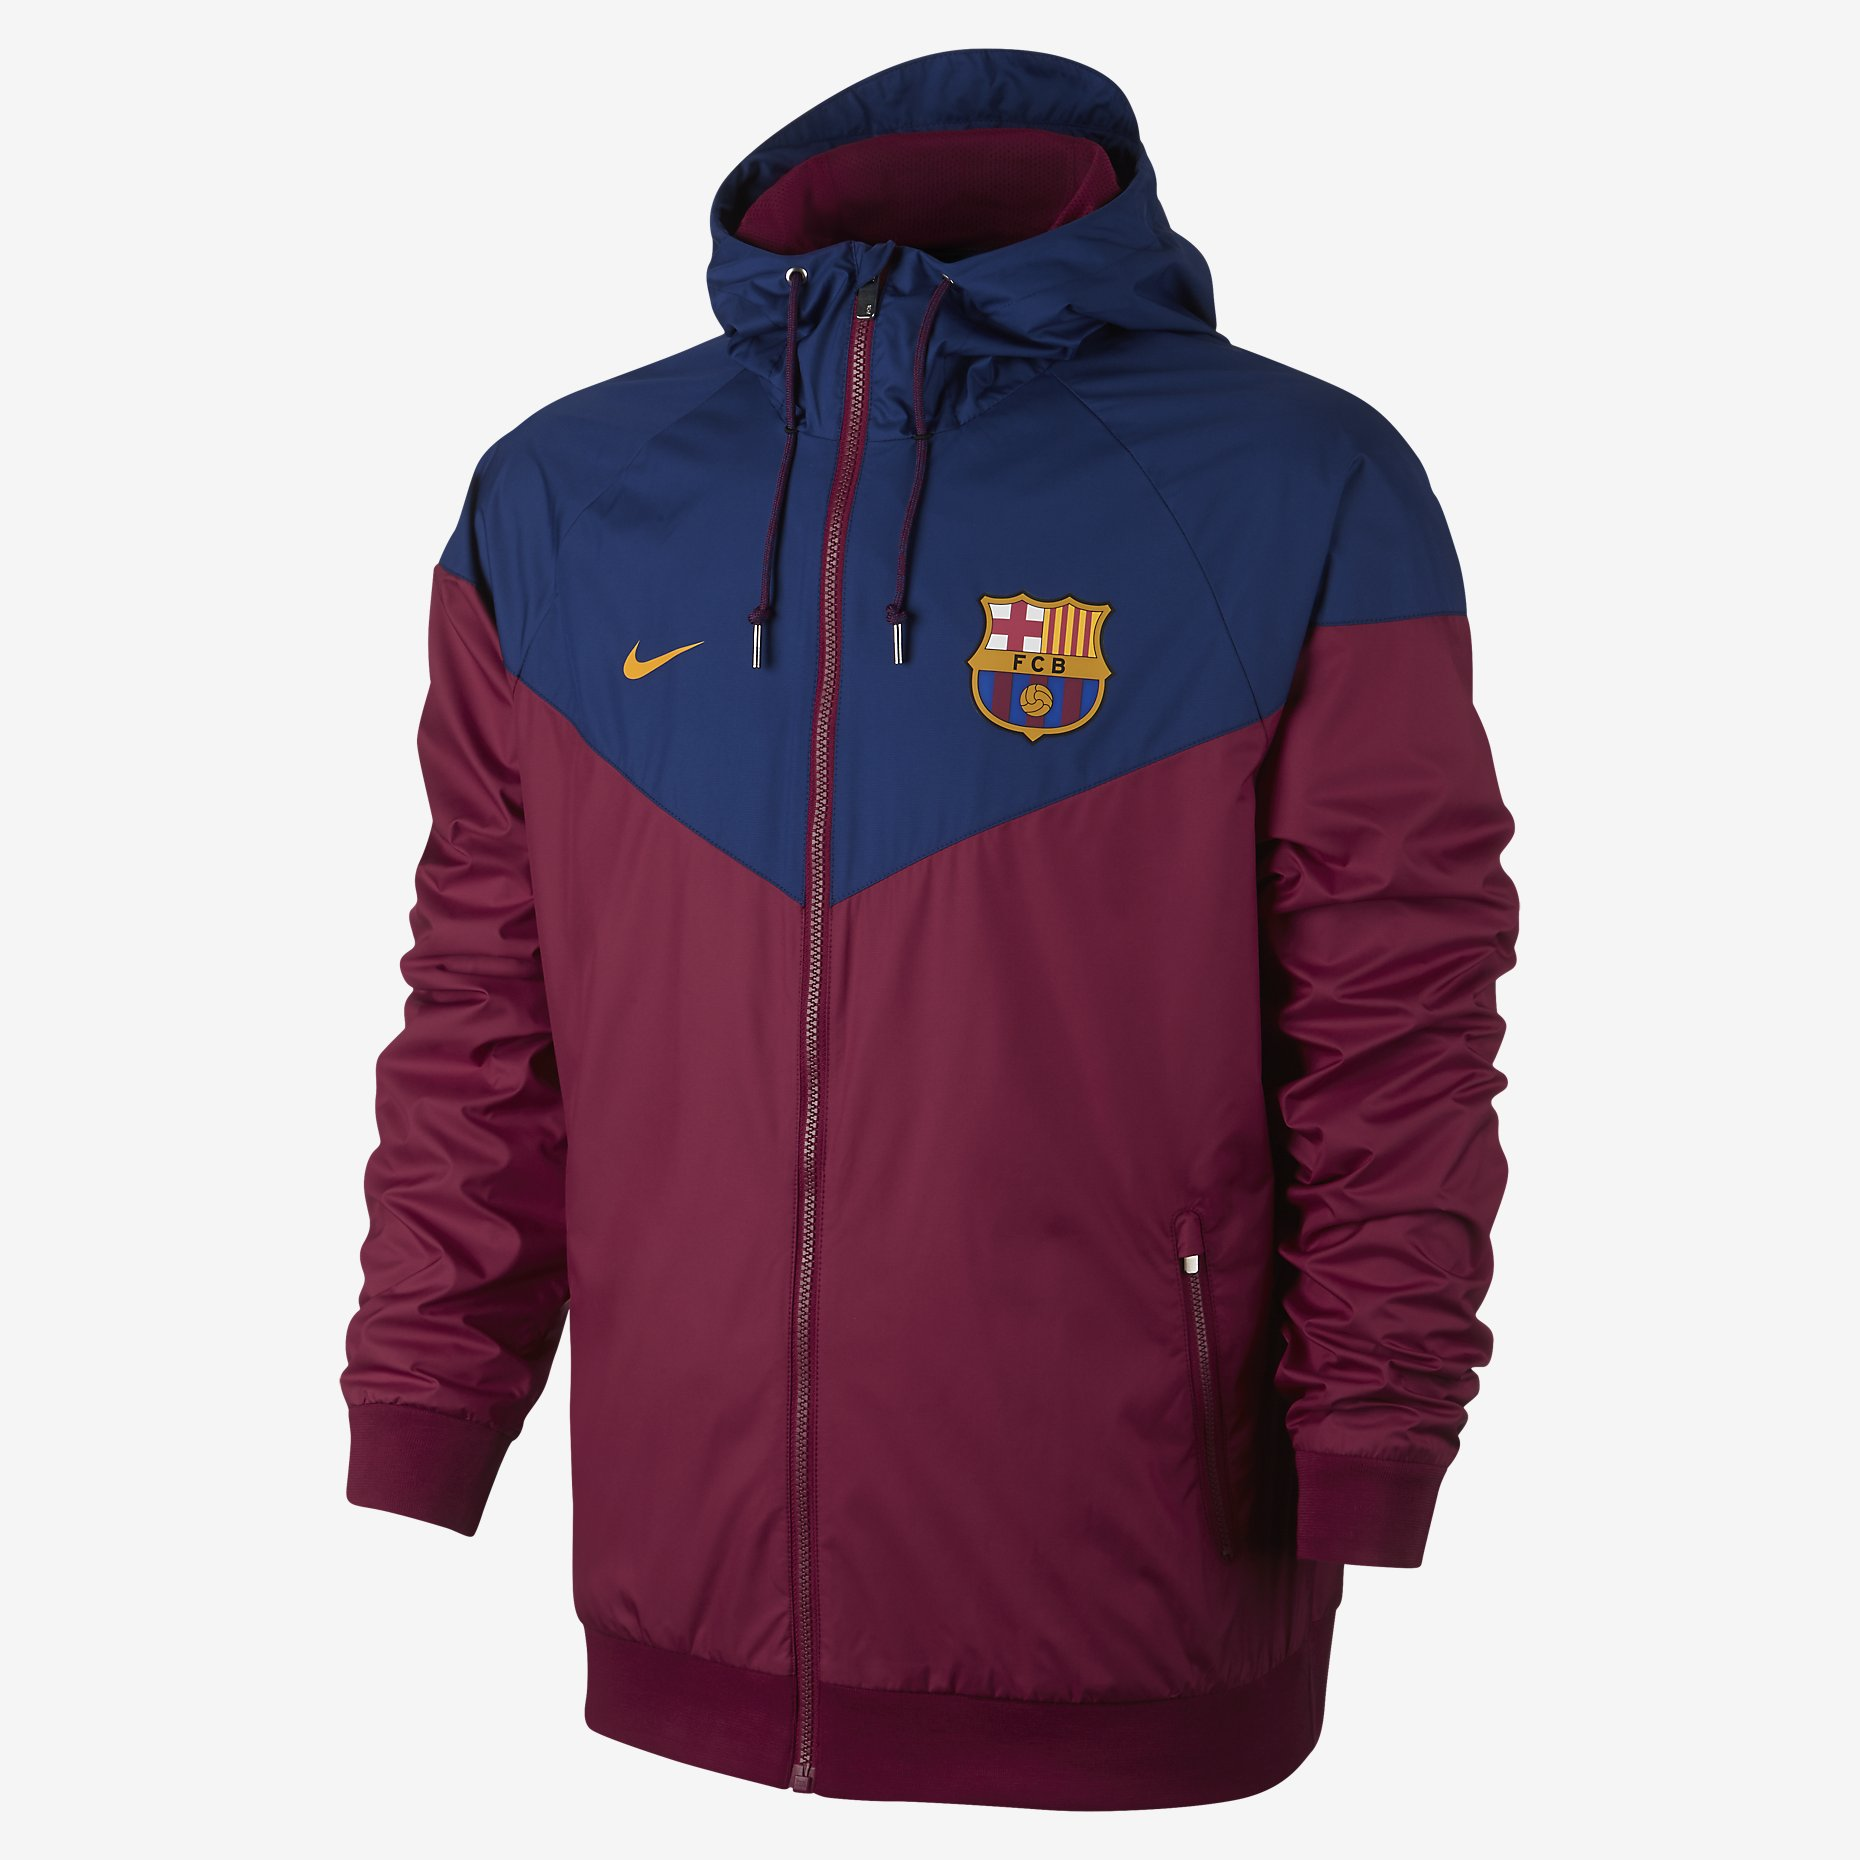 ccf85ee827b Click to enlarge image  nike_fc_barcelona_authentic_windrunner_noble_red_deep_royal_blue_university_gold_a.jpg  ...